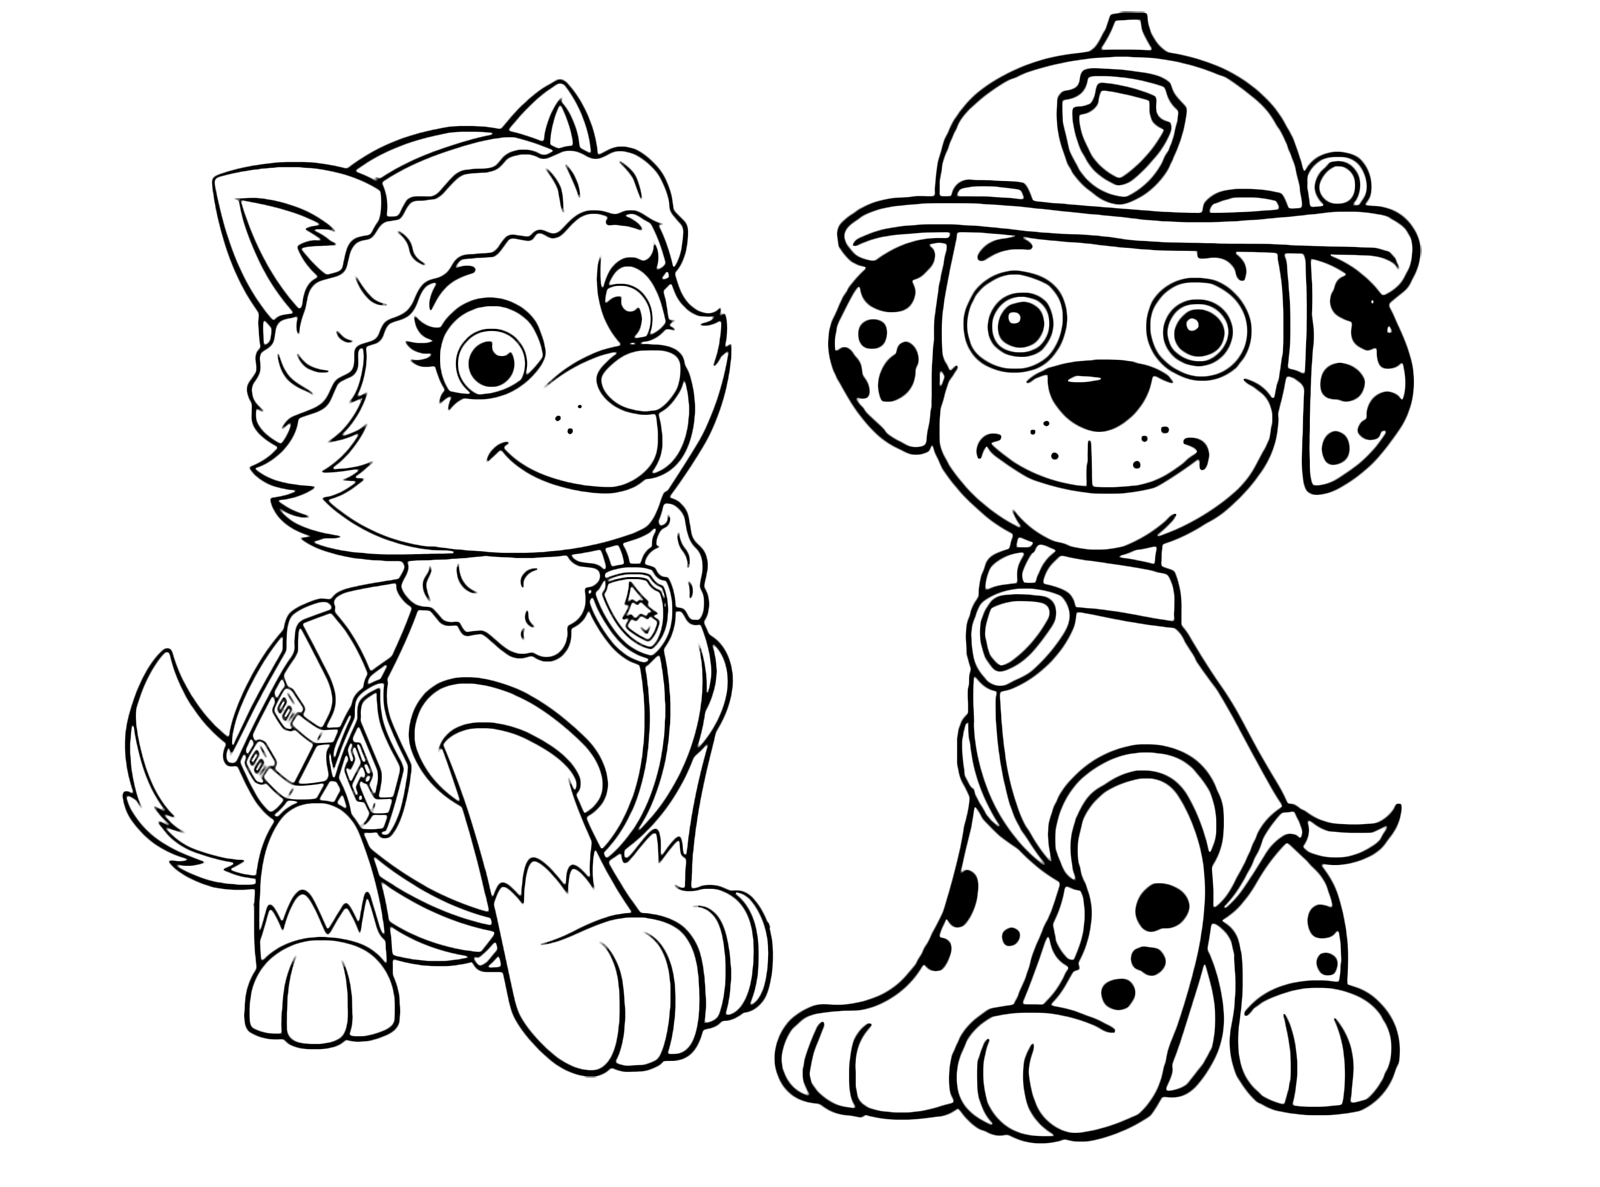 paw patrol coloring outline everest paw patrol coloring lesson kids coloring page patrol coloring paw outline